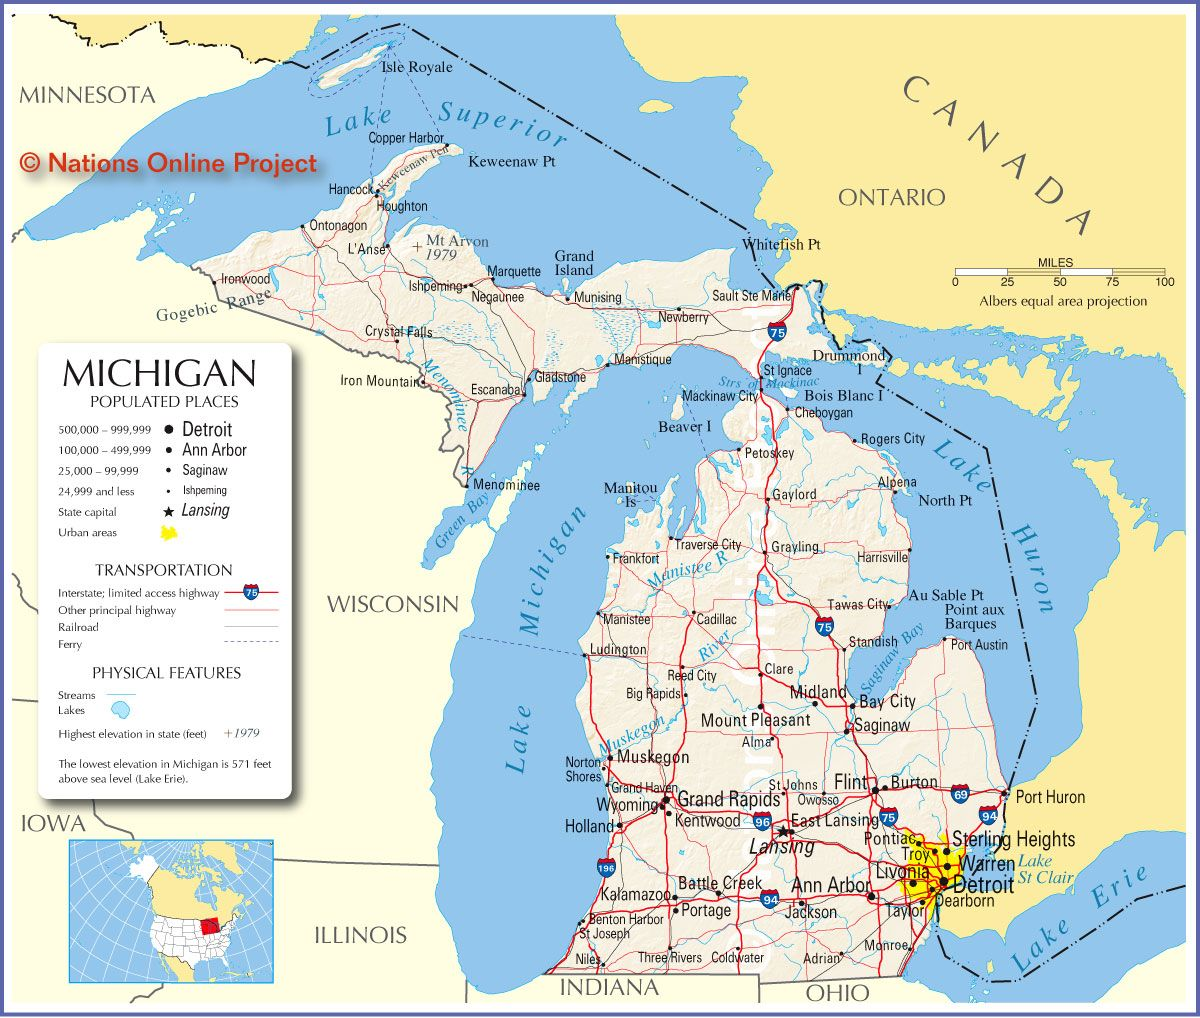 photograph relating to Printable Michigan Maps titled Reference Map of Michigan, United states of america - Countries On line Challenge